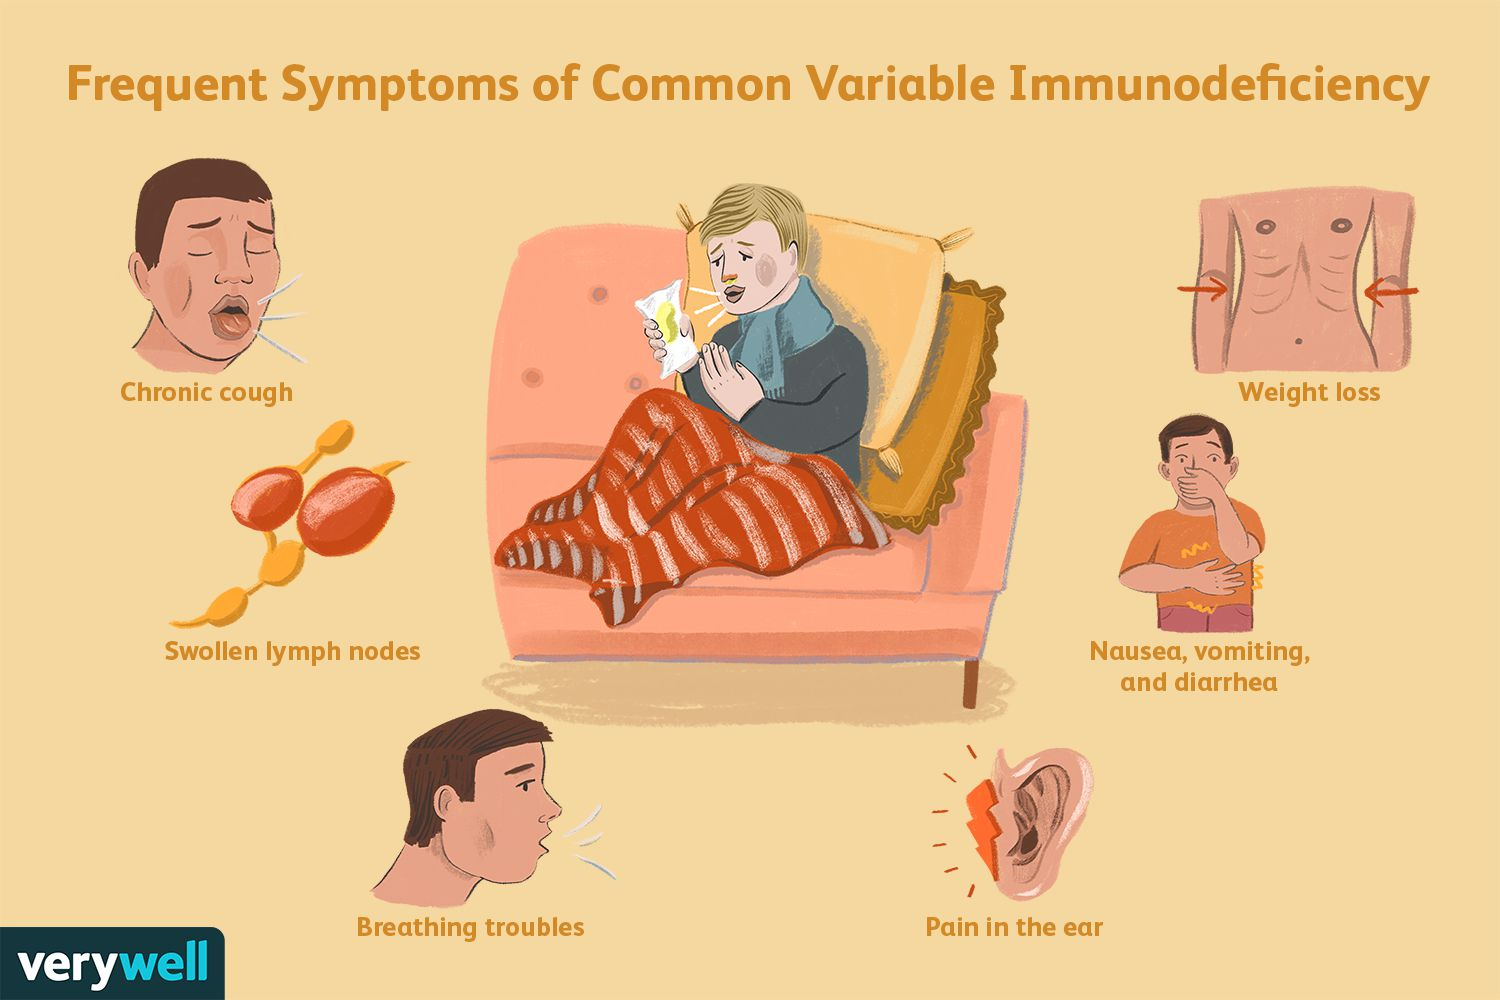 Frequent Symptoms of Common Variable Immunodeficiency